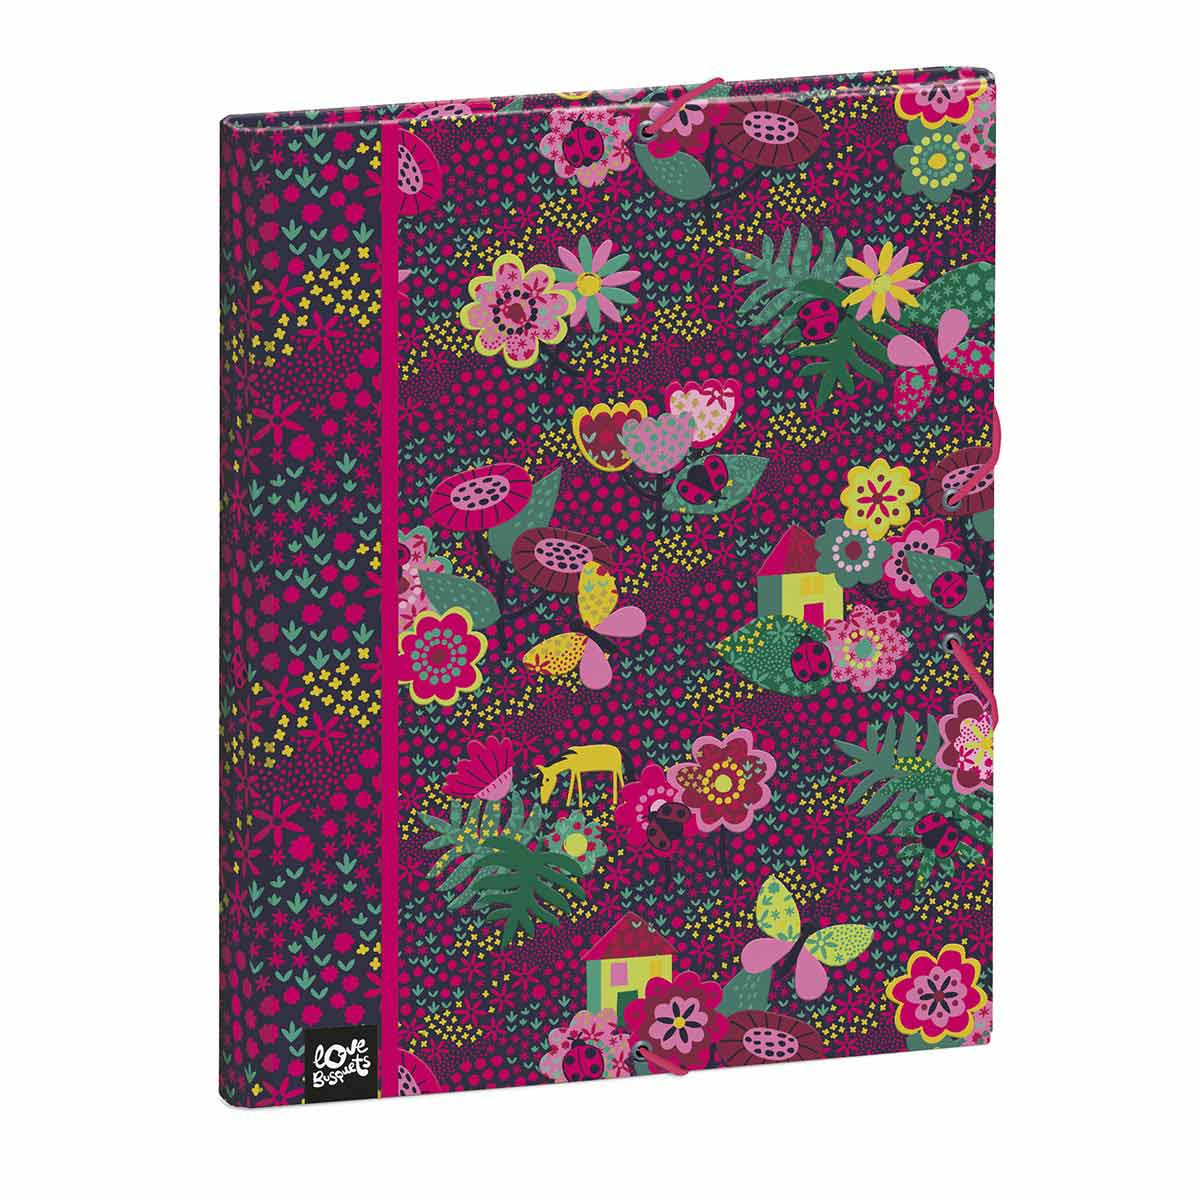 Hard Cover Folio GARDEN By BUSQUETS 26,0 X 33,5 X 3,0 Cm.